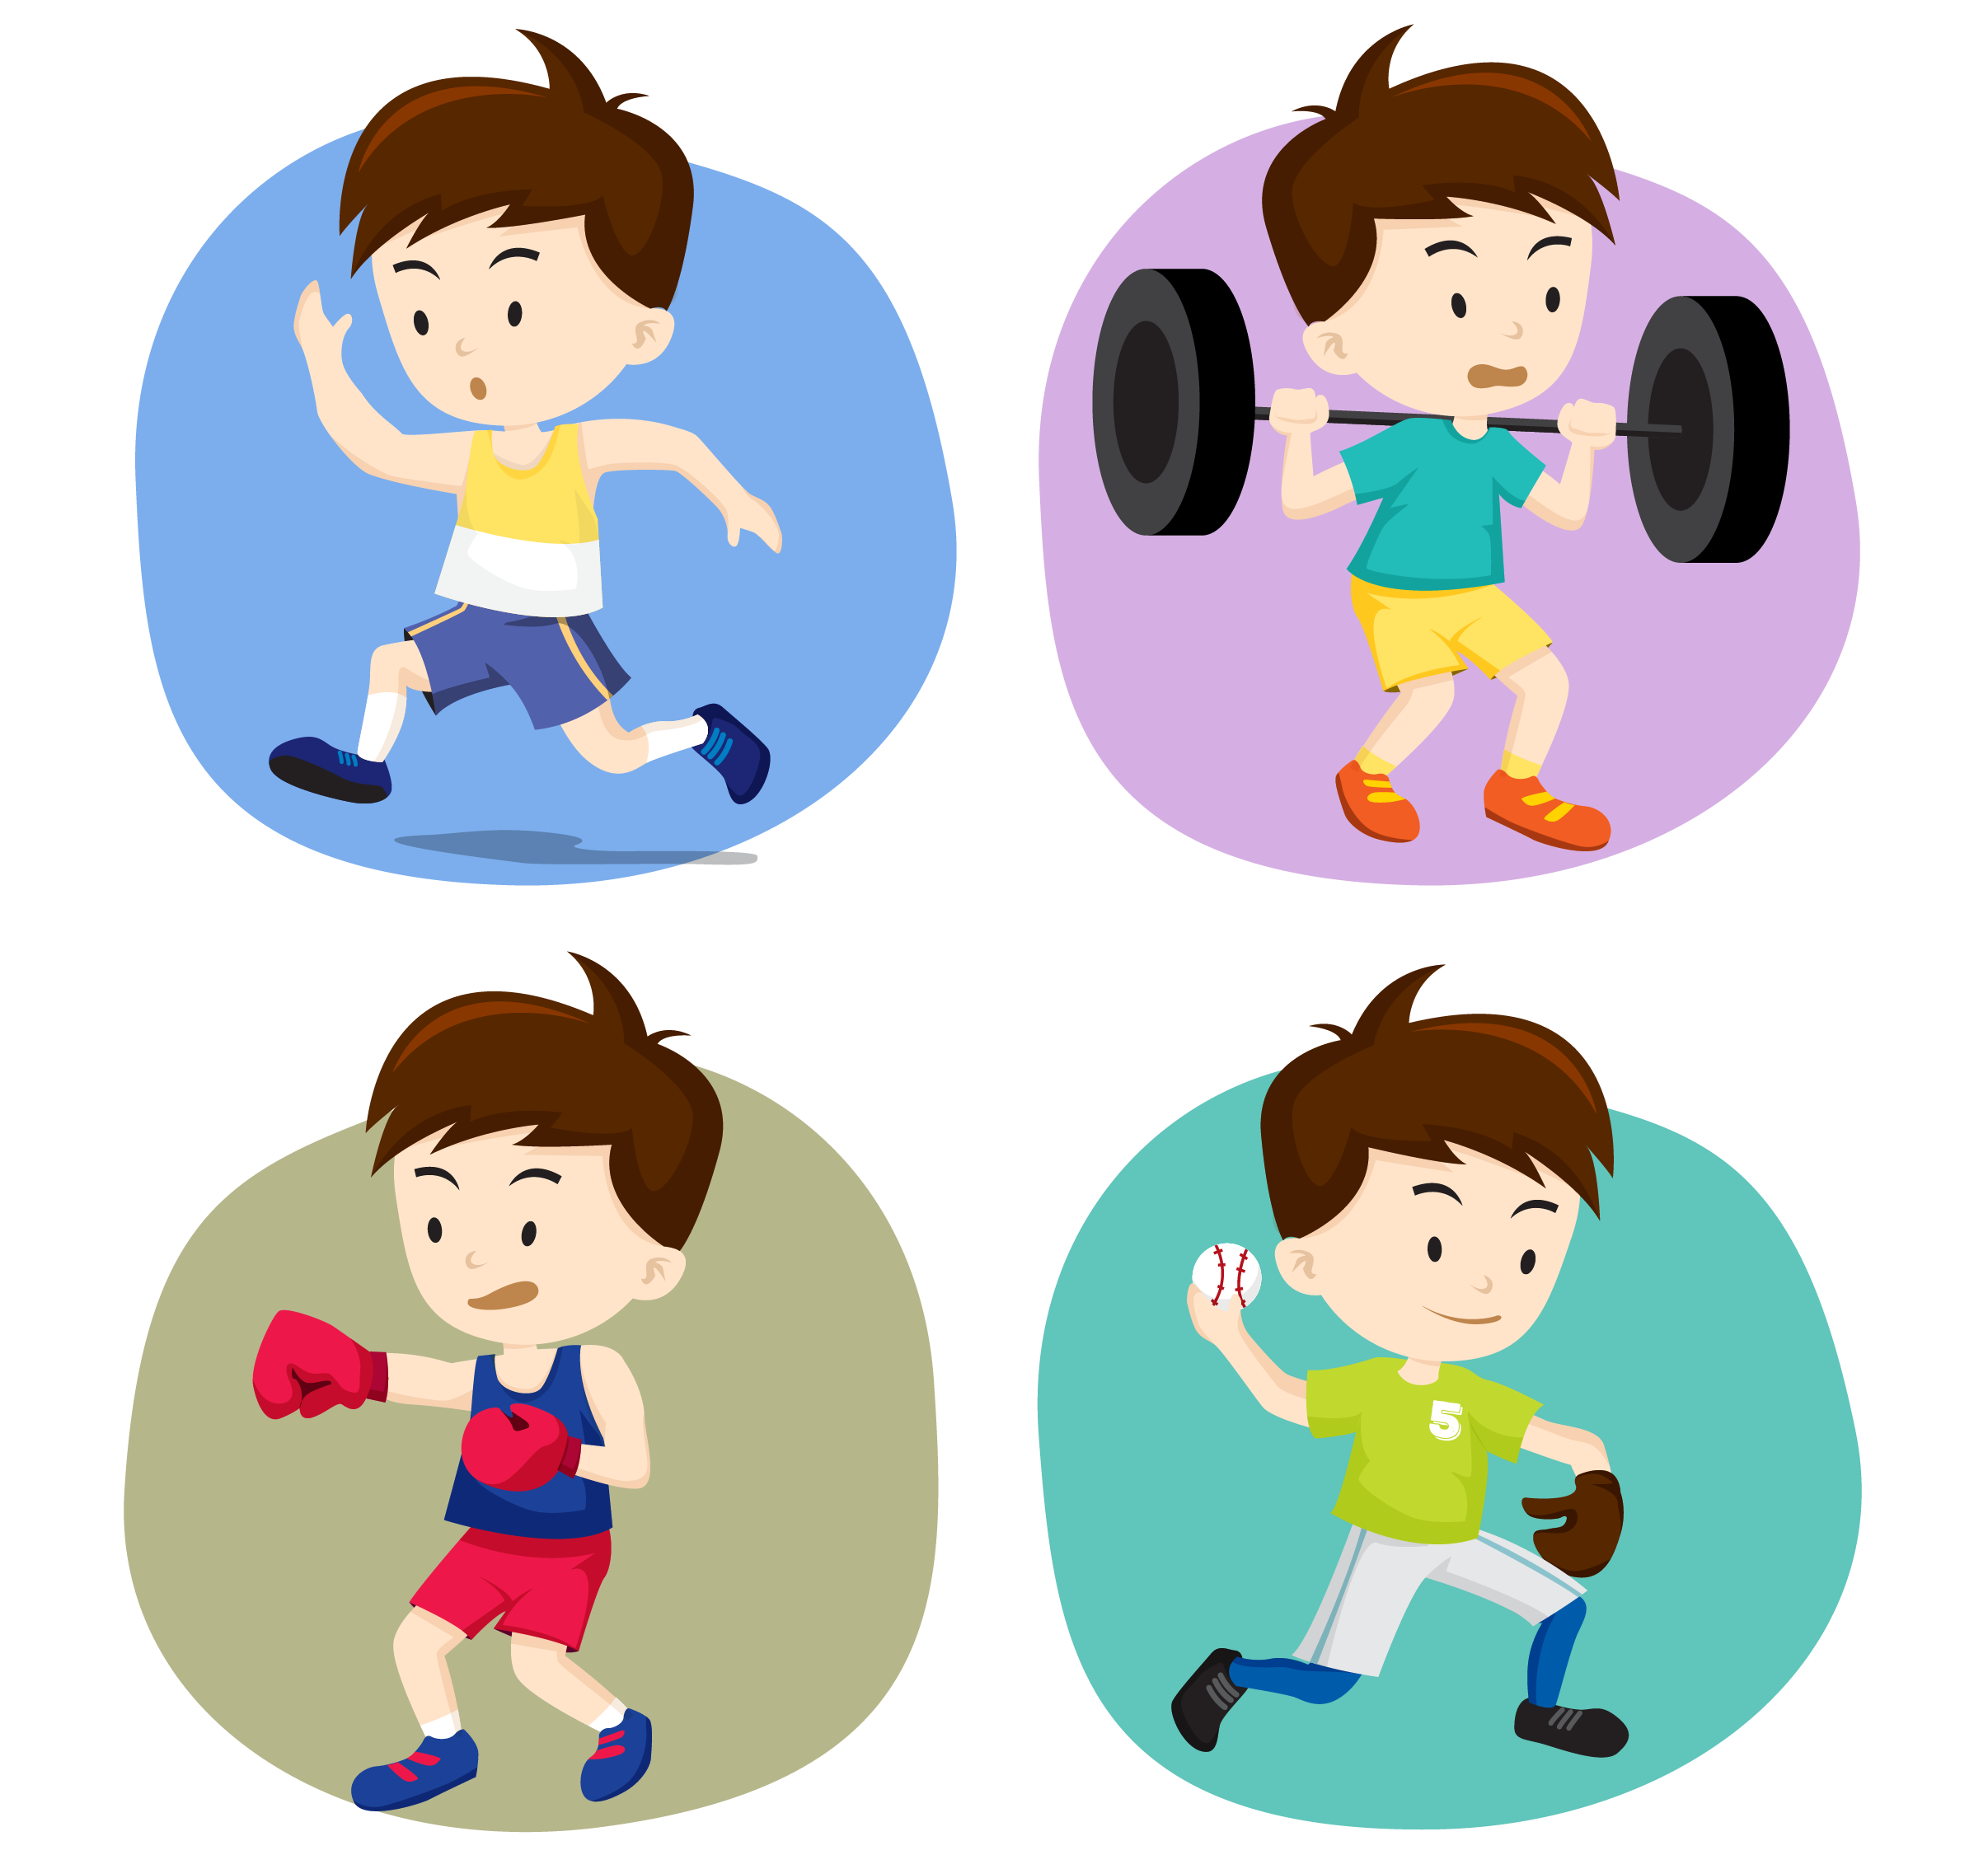 Olympic clipart sport person. Games cartoon illustration cute